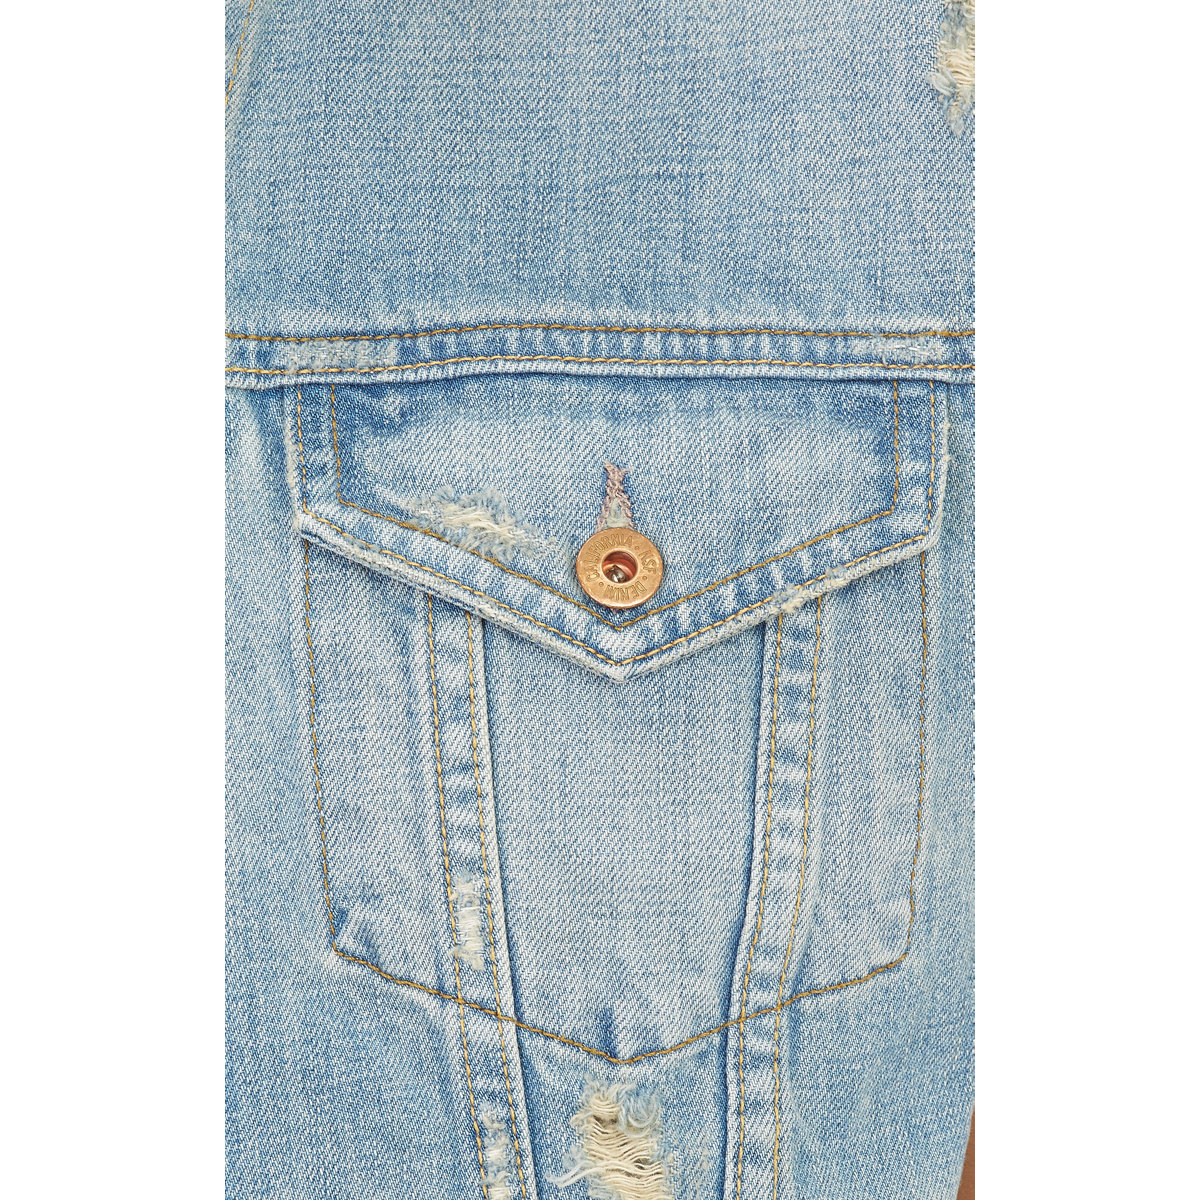 Nsf Clothing Combo Distressed Denim Vest In Blue Lyst